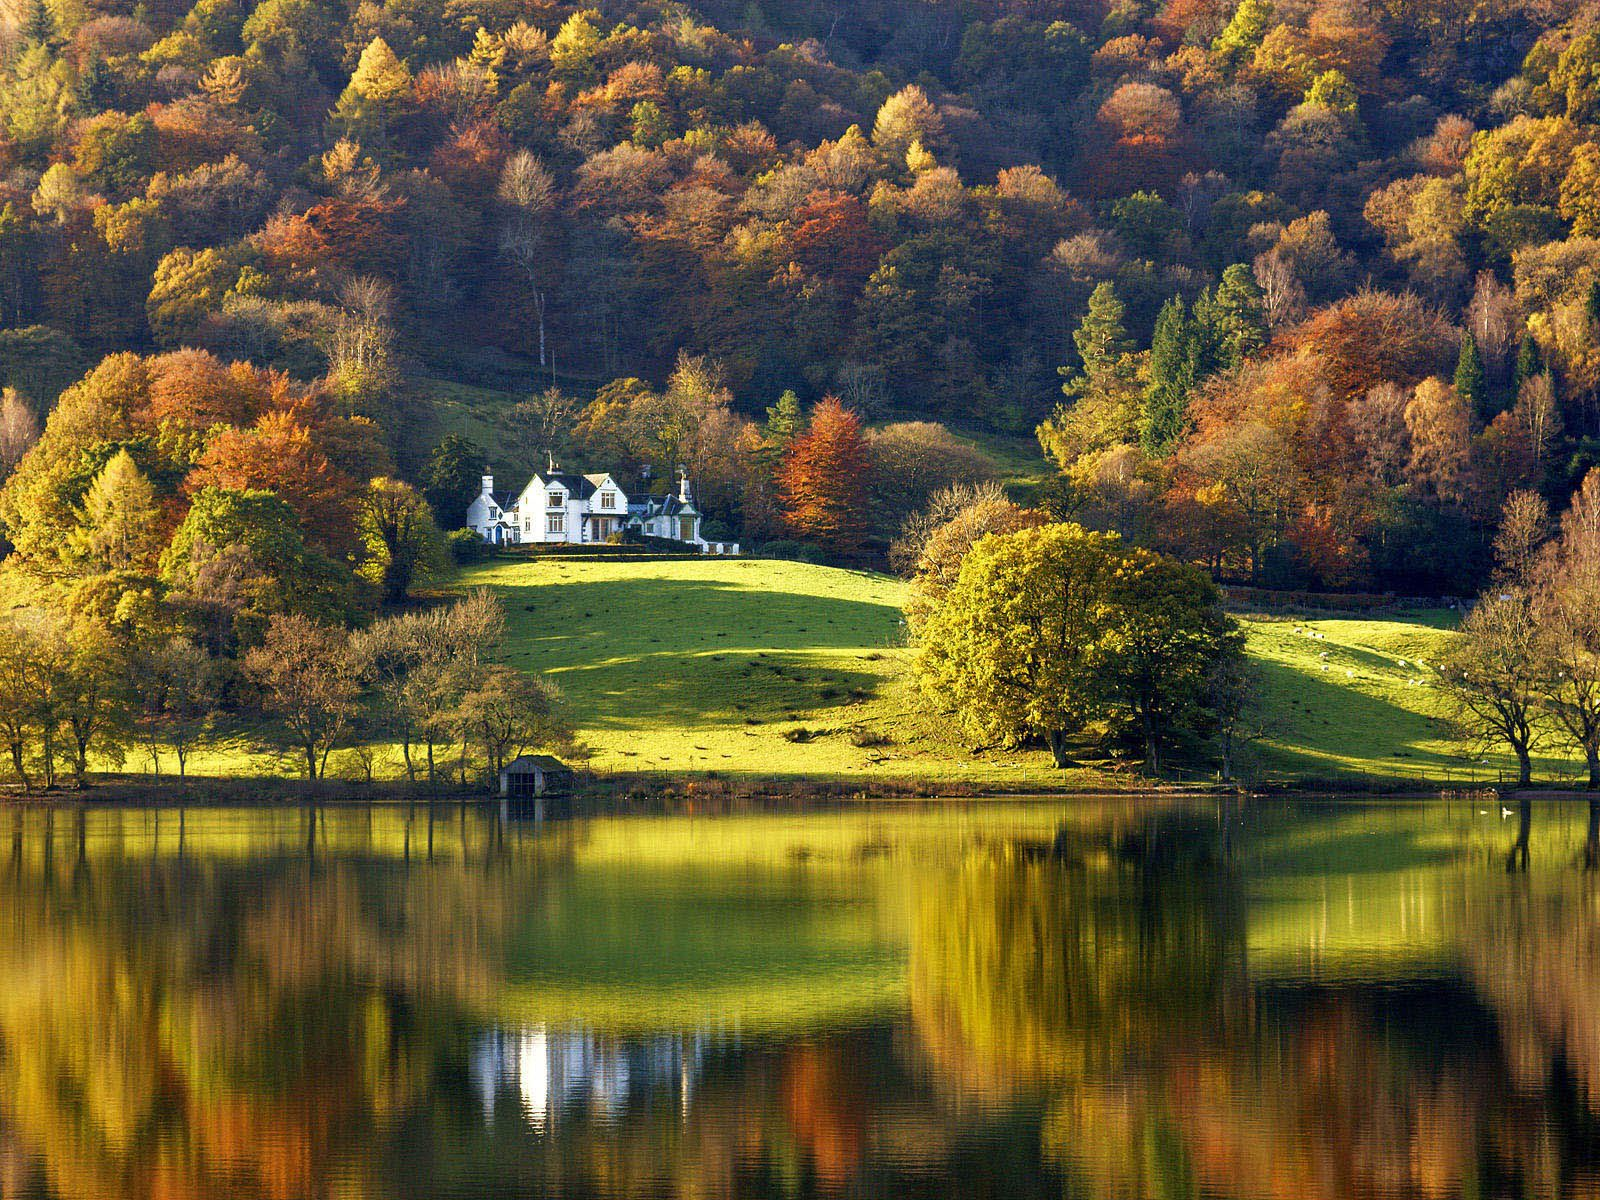 Amazing Beautiful Forest Nature Colorful Autumn Perfect Peace Dream Gorgeous Inspiration Natural Art Poster Print 4x6 8 5x11 11x17 18x24 24x36 Lake District England Lake District Lake Landscape